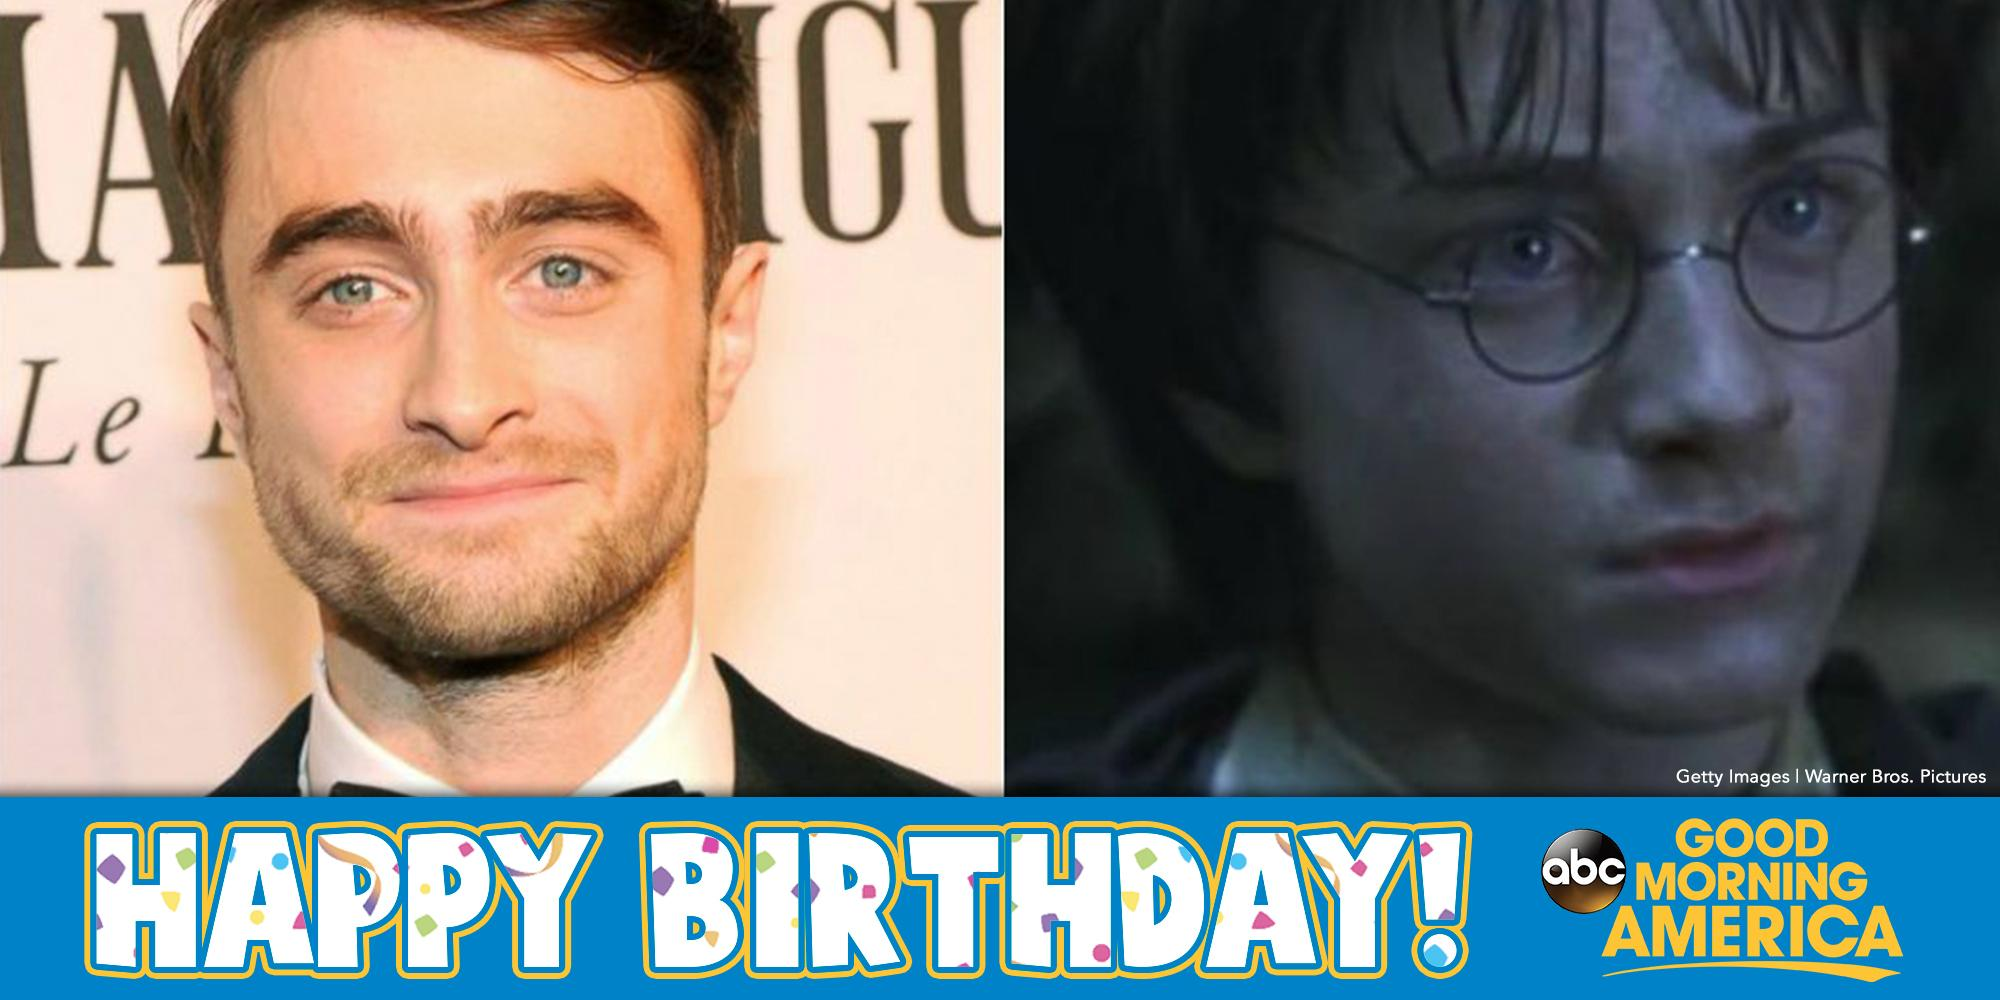 Happy Birthday Harry Potter! Daniel Radcliffe turns 26-years old today.